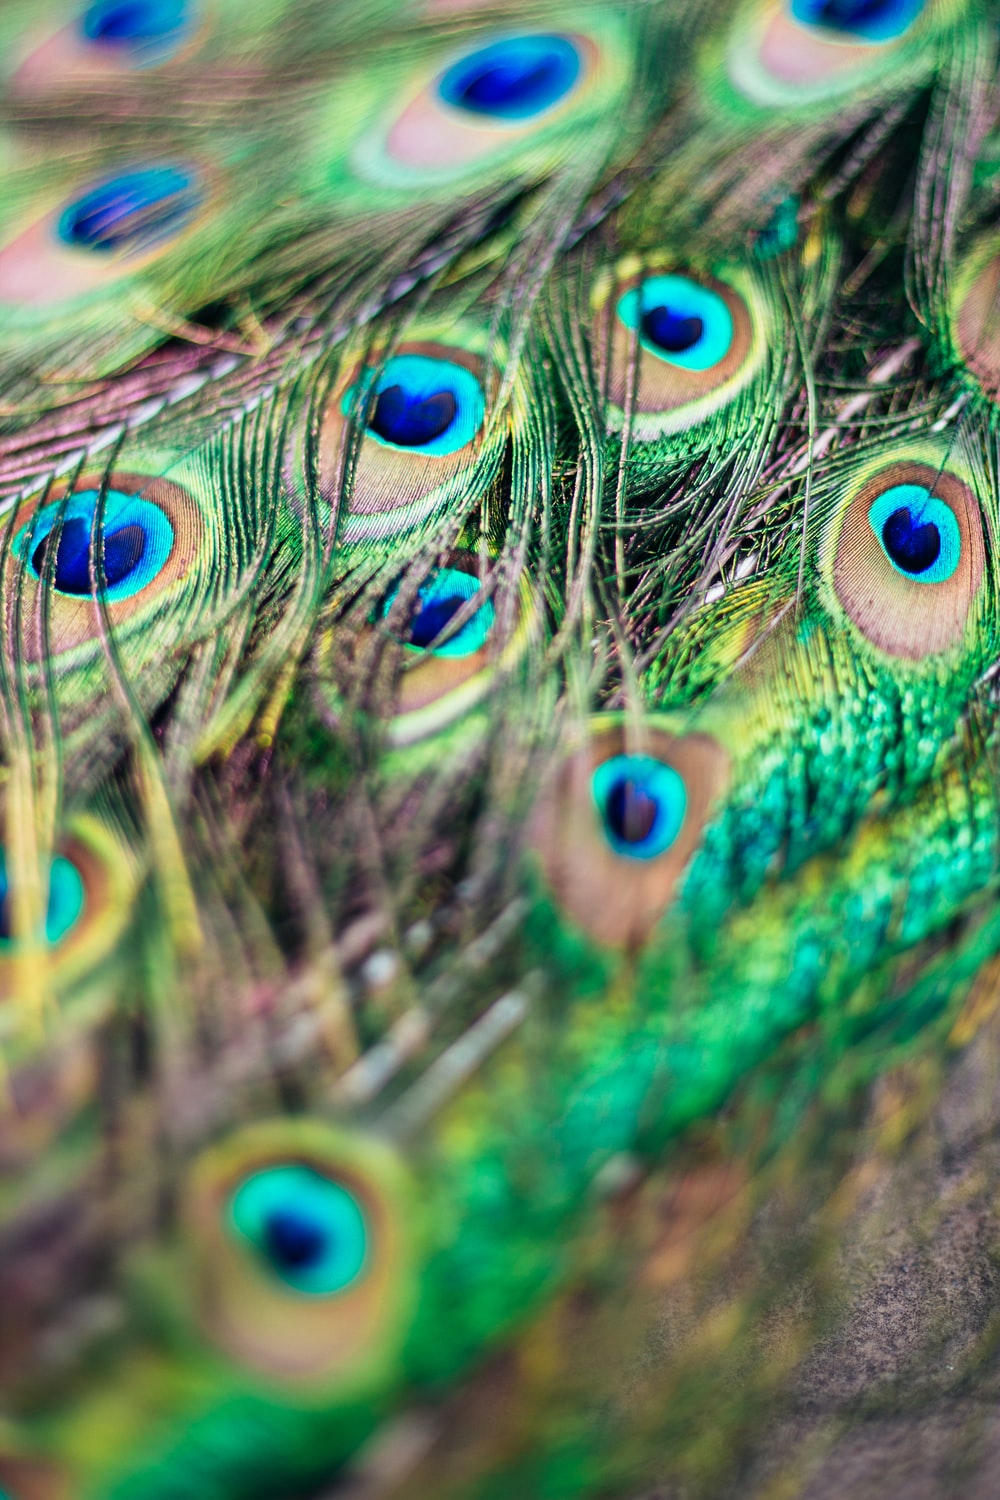 green, blue and brown peacock feather close-up photography